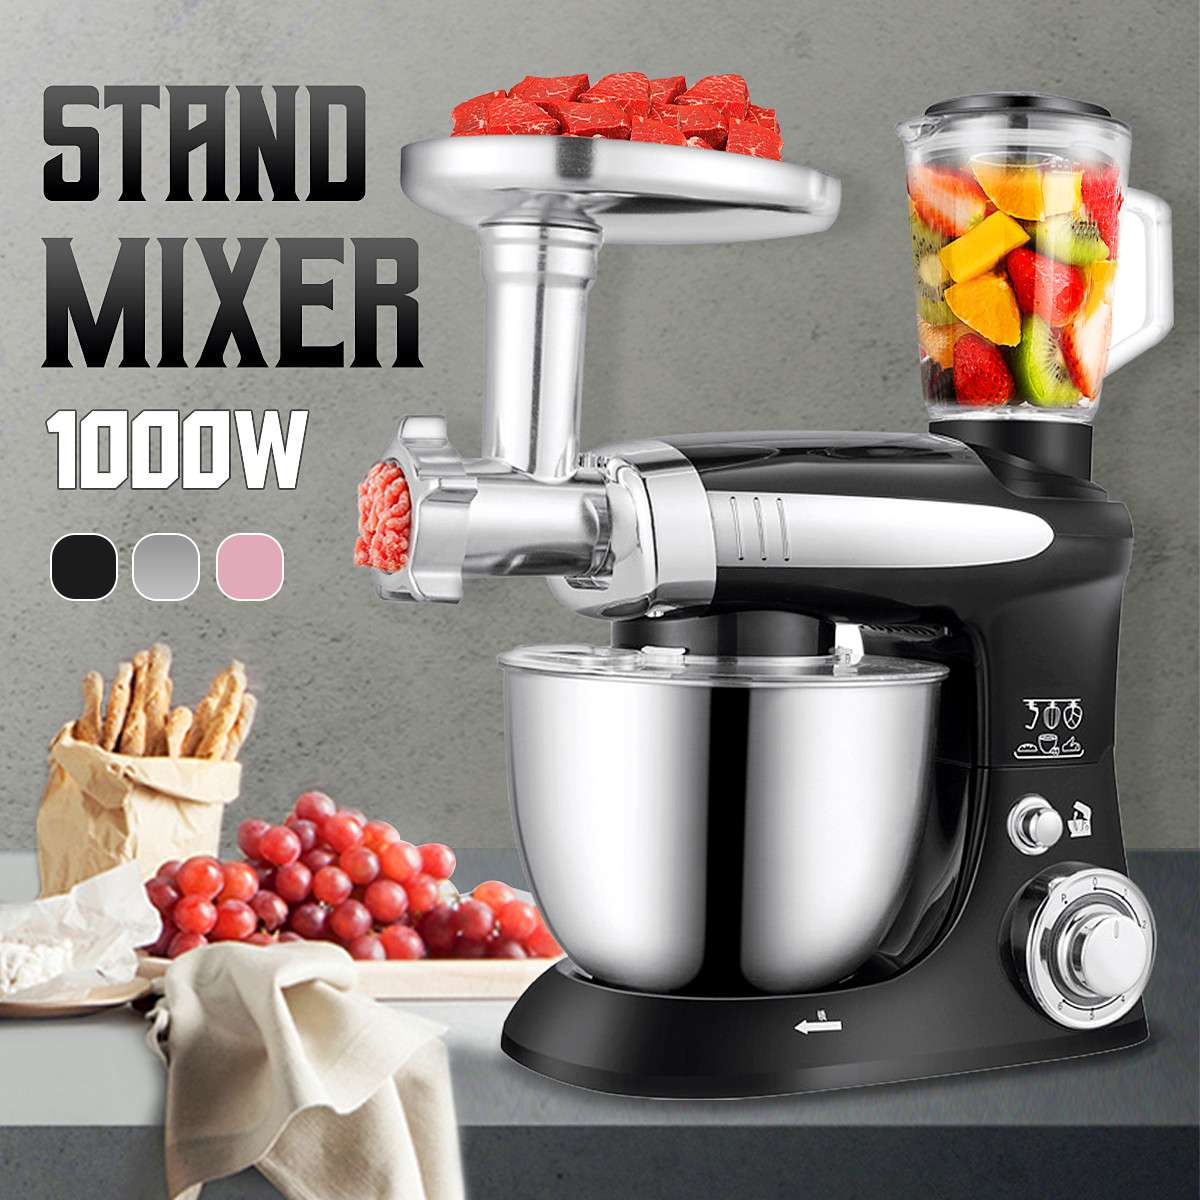 6 Speed Stand Mixer Multifunctional Electric Food Blender Mixer 1000W 220V Meat Grinder Food Processor Kitchen Cooking Tools